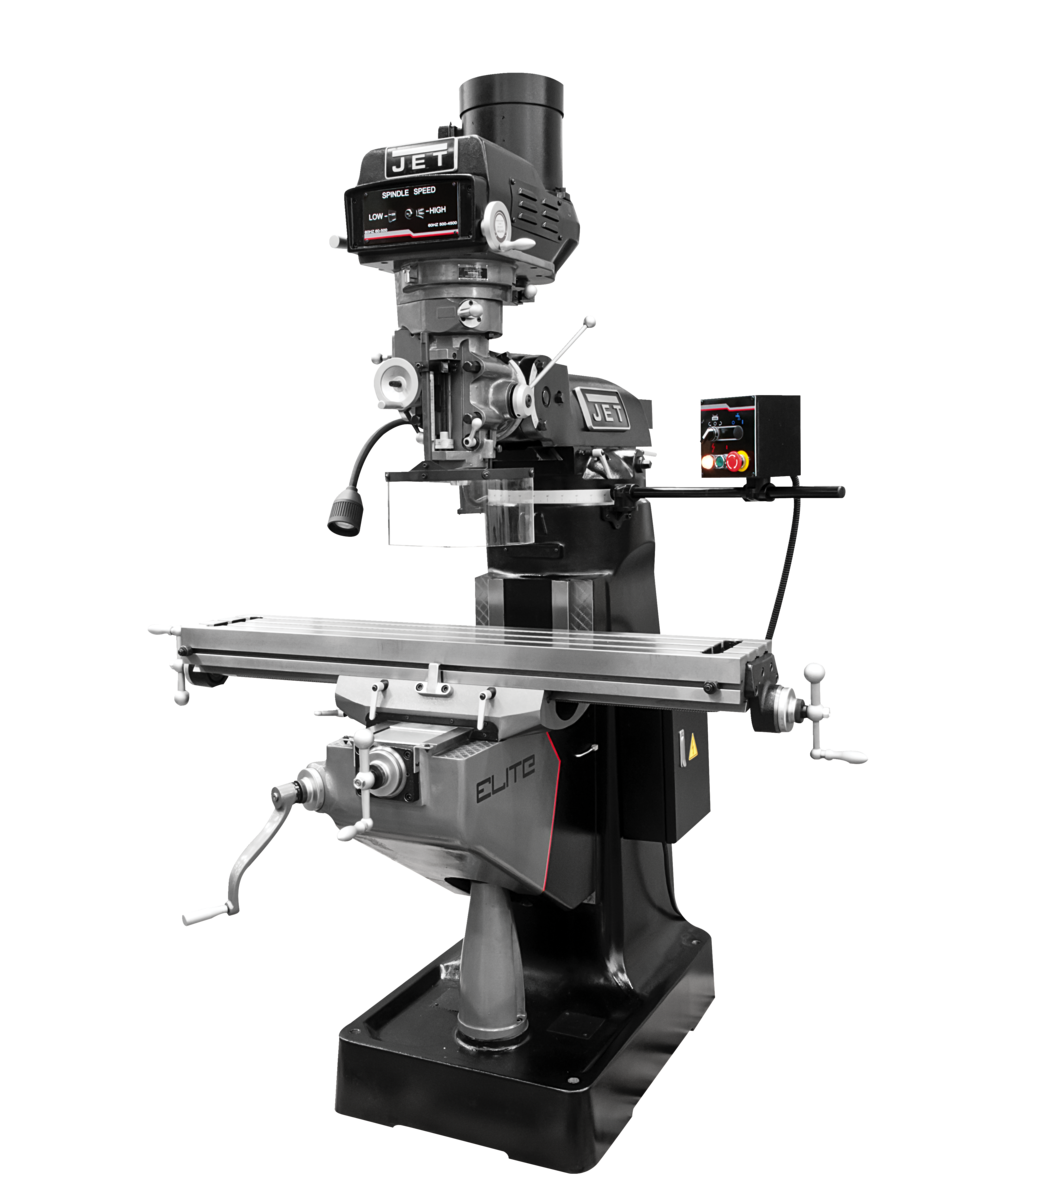 ETM-949 Mill with 3-Axis ACU-RITE 303  (Quill) DRO and X, Y, Z-Axis JET Powerfeeds and USA Made Air Draw Bar